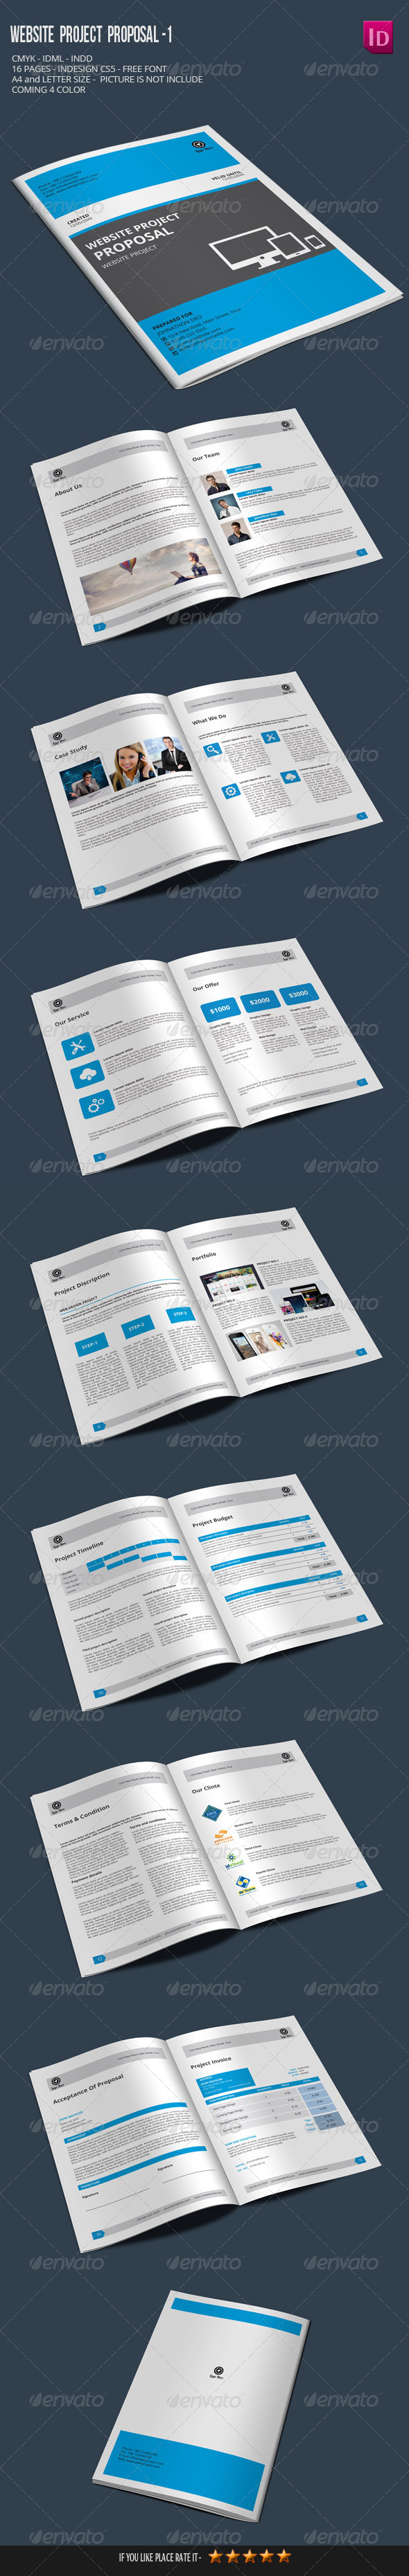 GraphicRiver Website Project Proposal-1 7359358